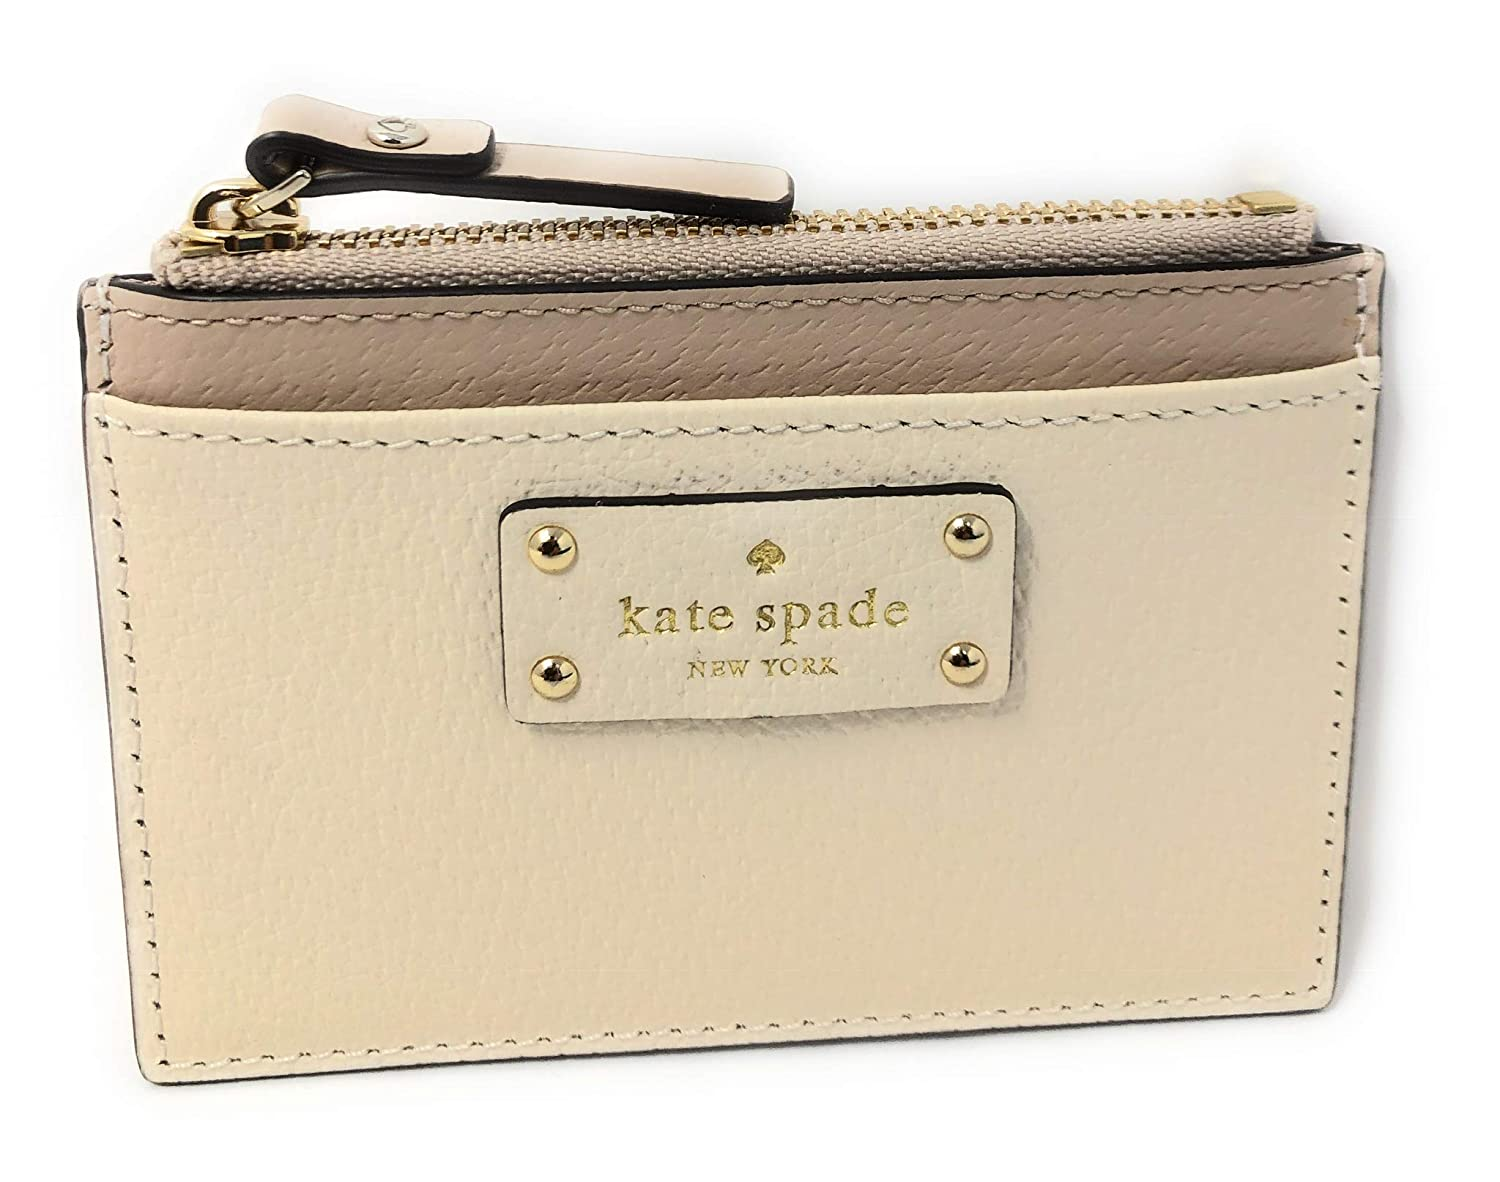 kate spade card case  Amazon.com: Kate Spade Adi Wallet Coin Purse Business Card ...